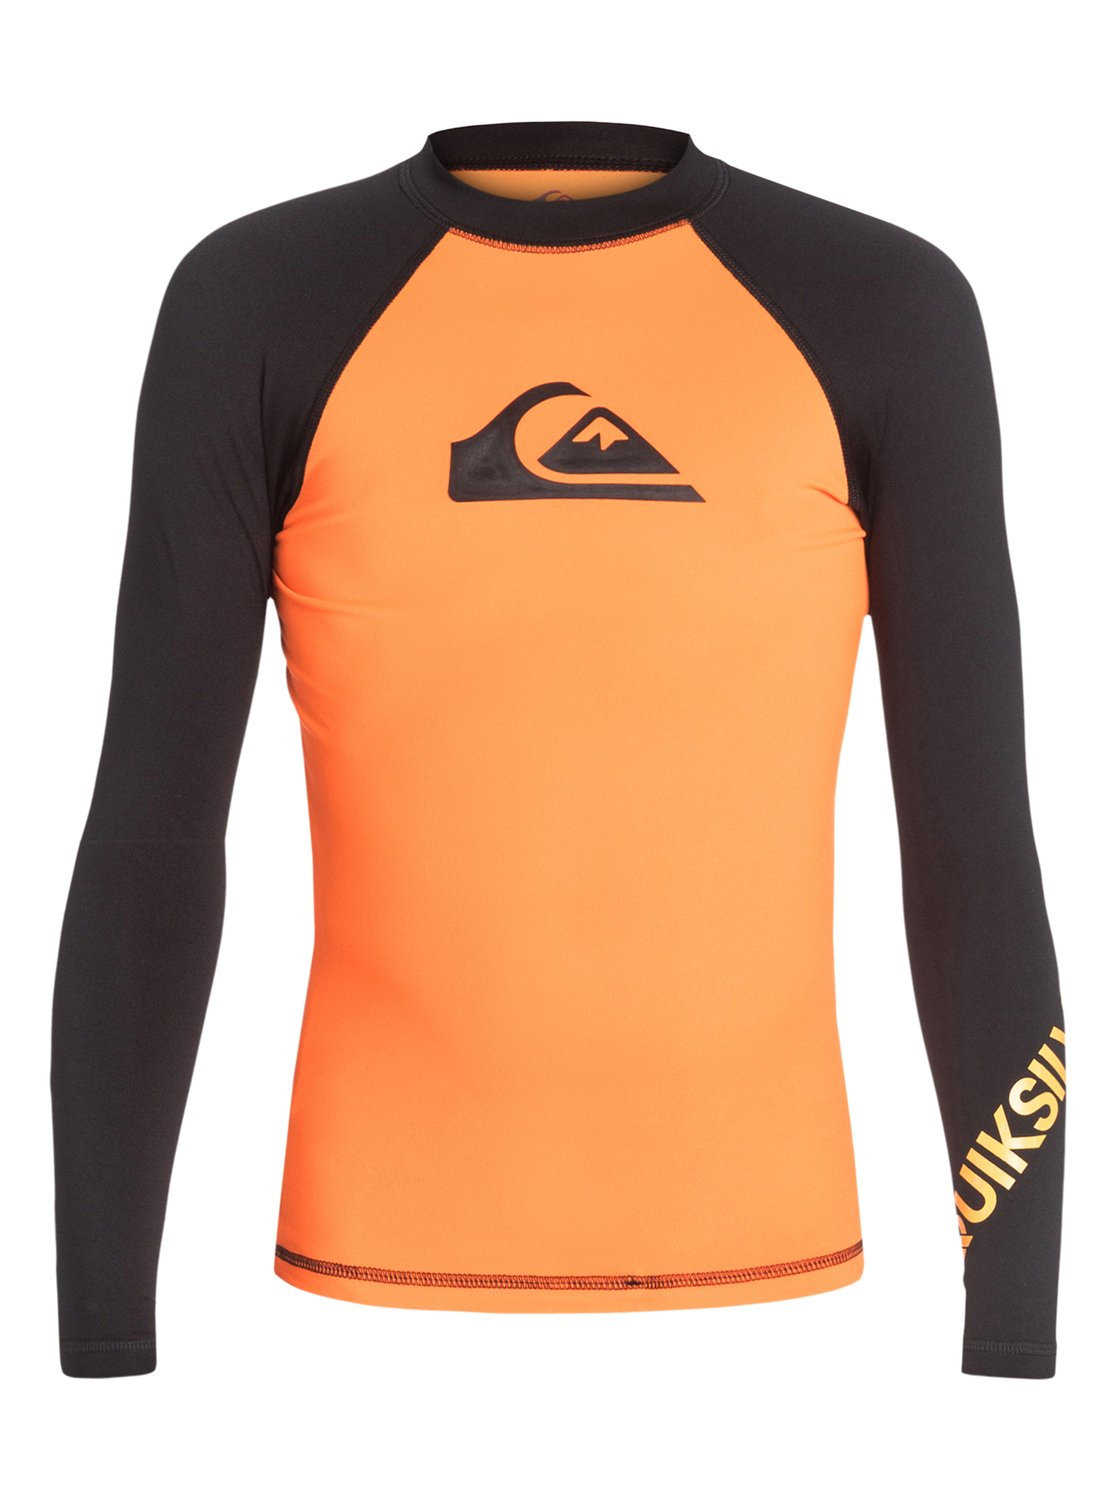 Sun-Protecting Swim Shirt (Men) Image